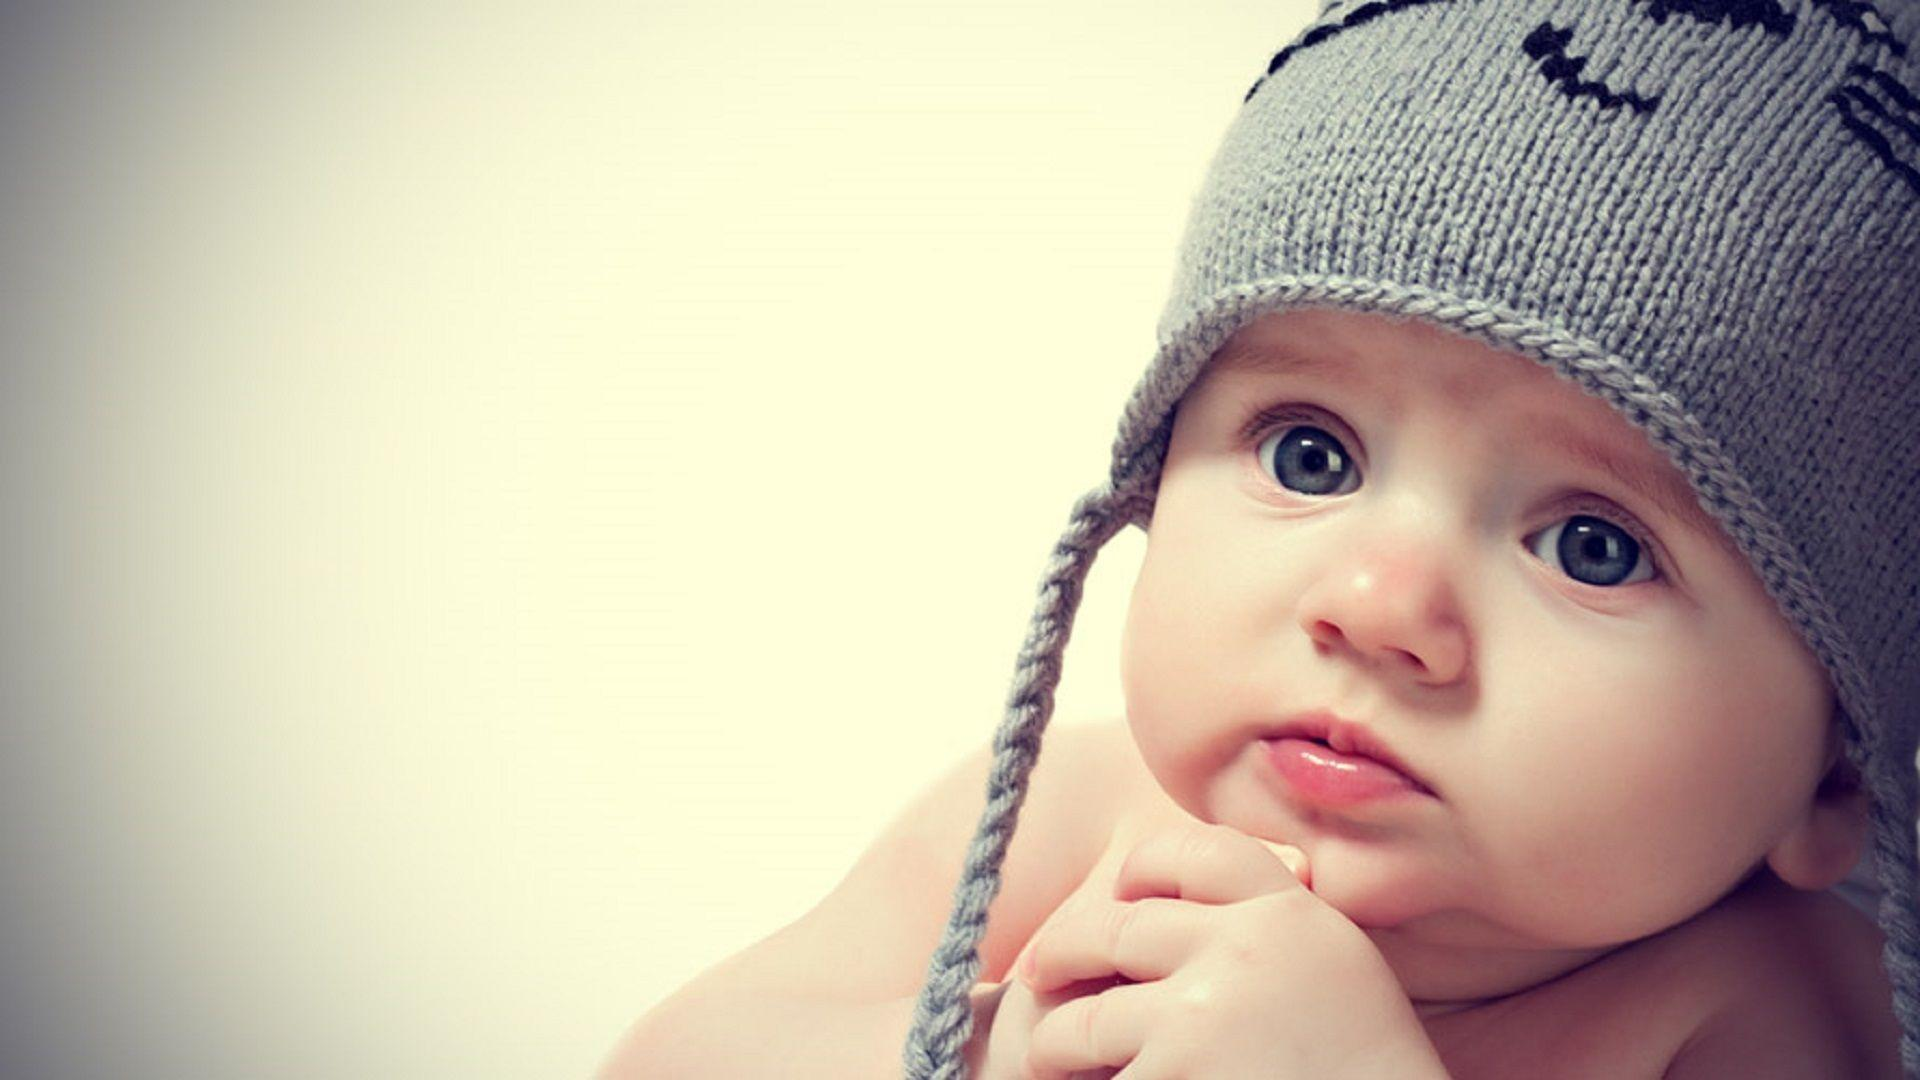 Baby Wallpapers Hd Wallpaper Cave